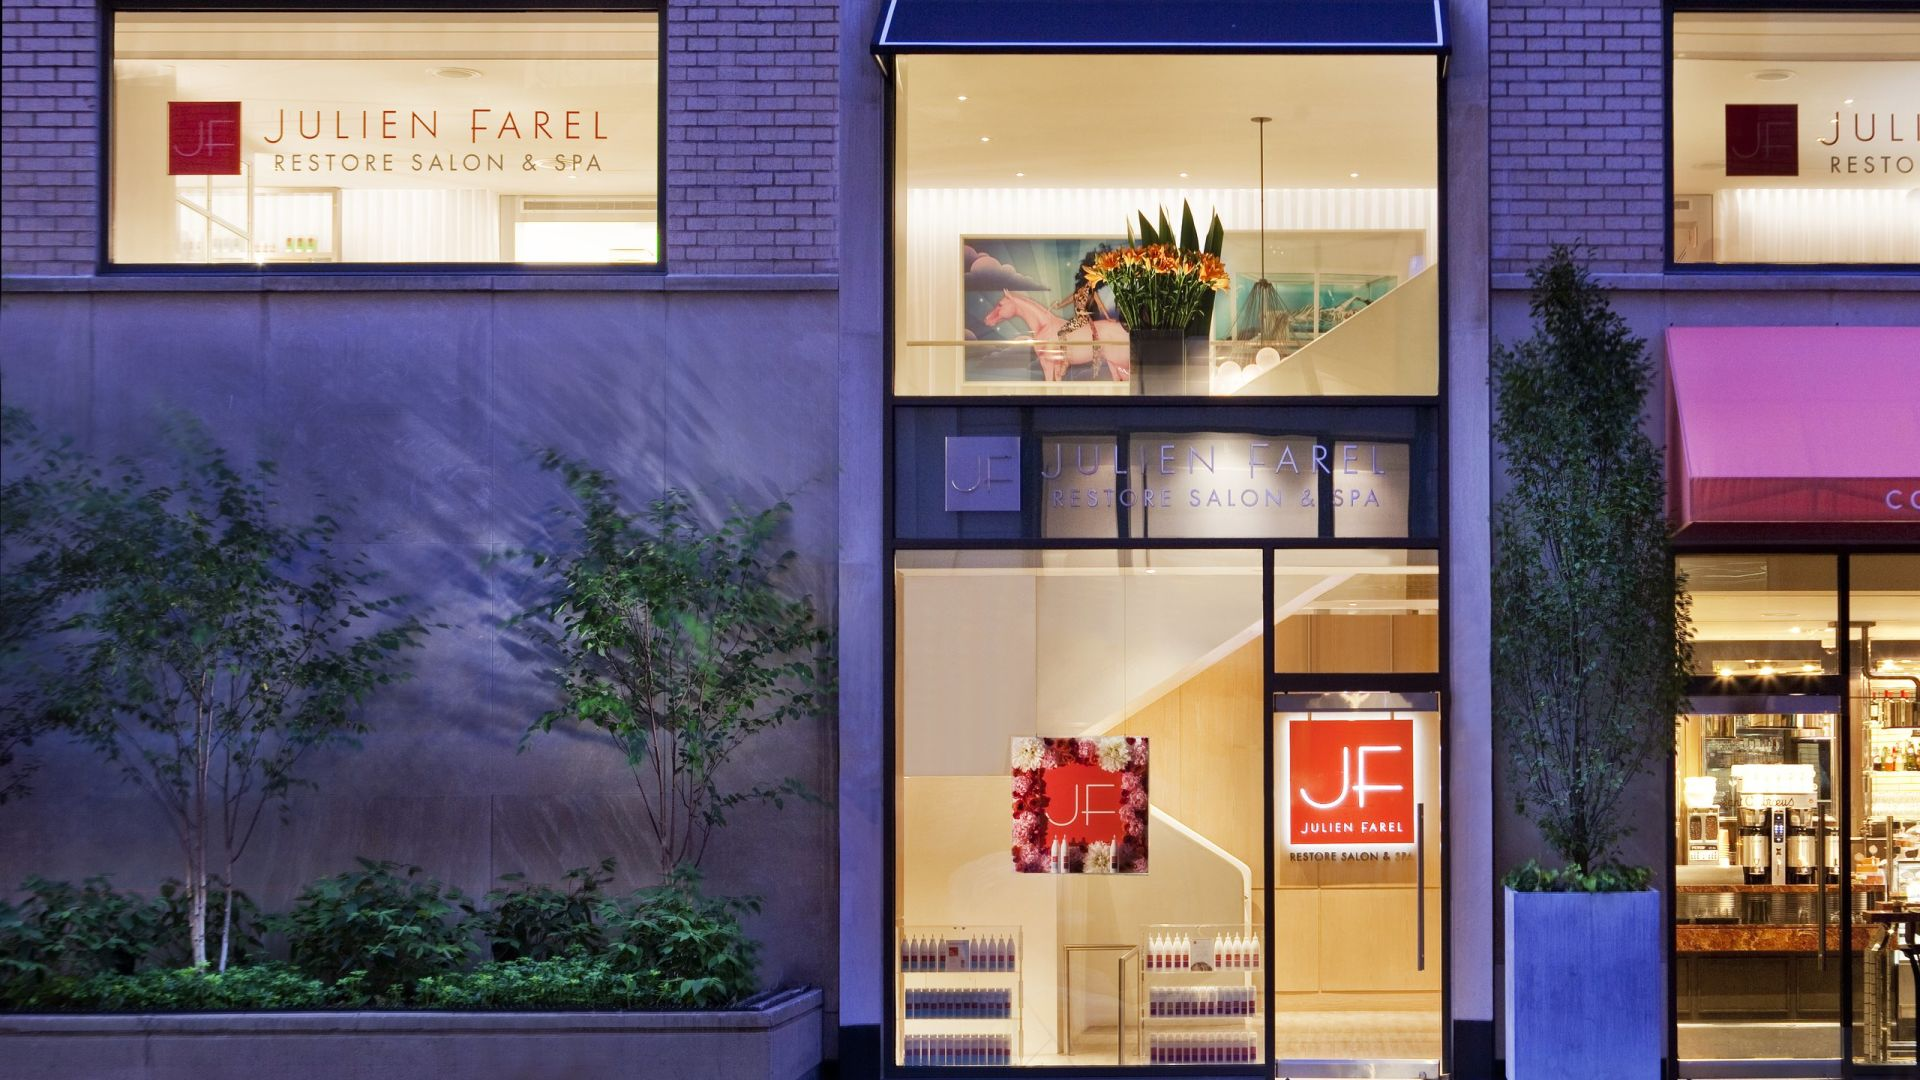 Julien Farel Restore Salon & Spa Exterior | Loews Regency New York Hotel